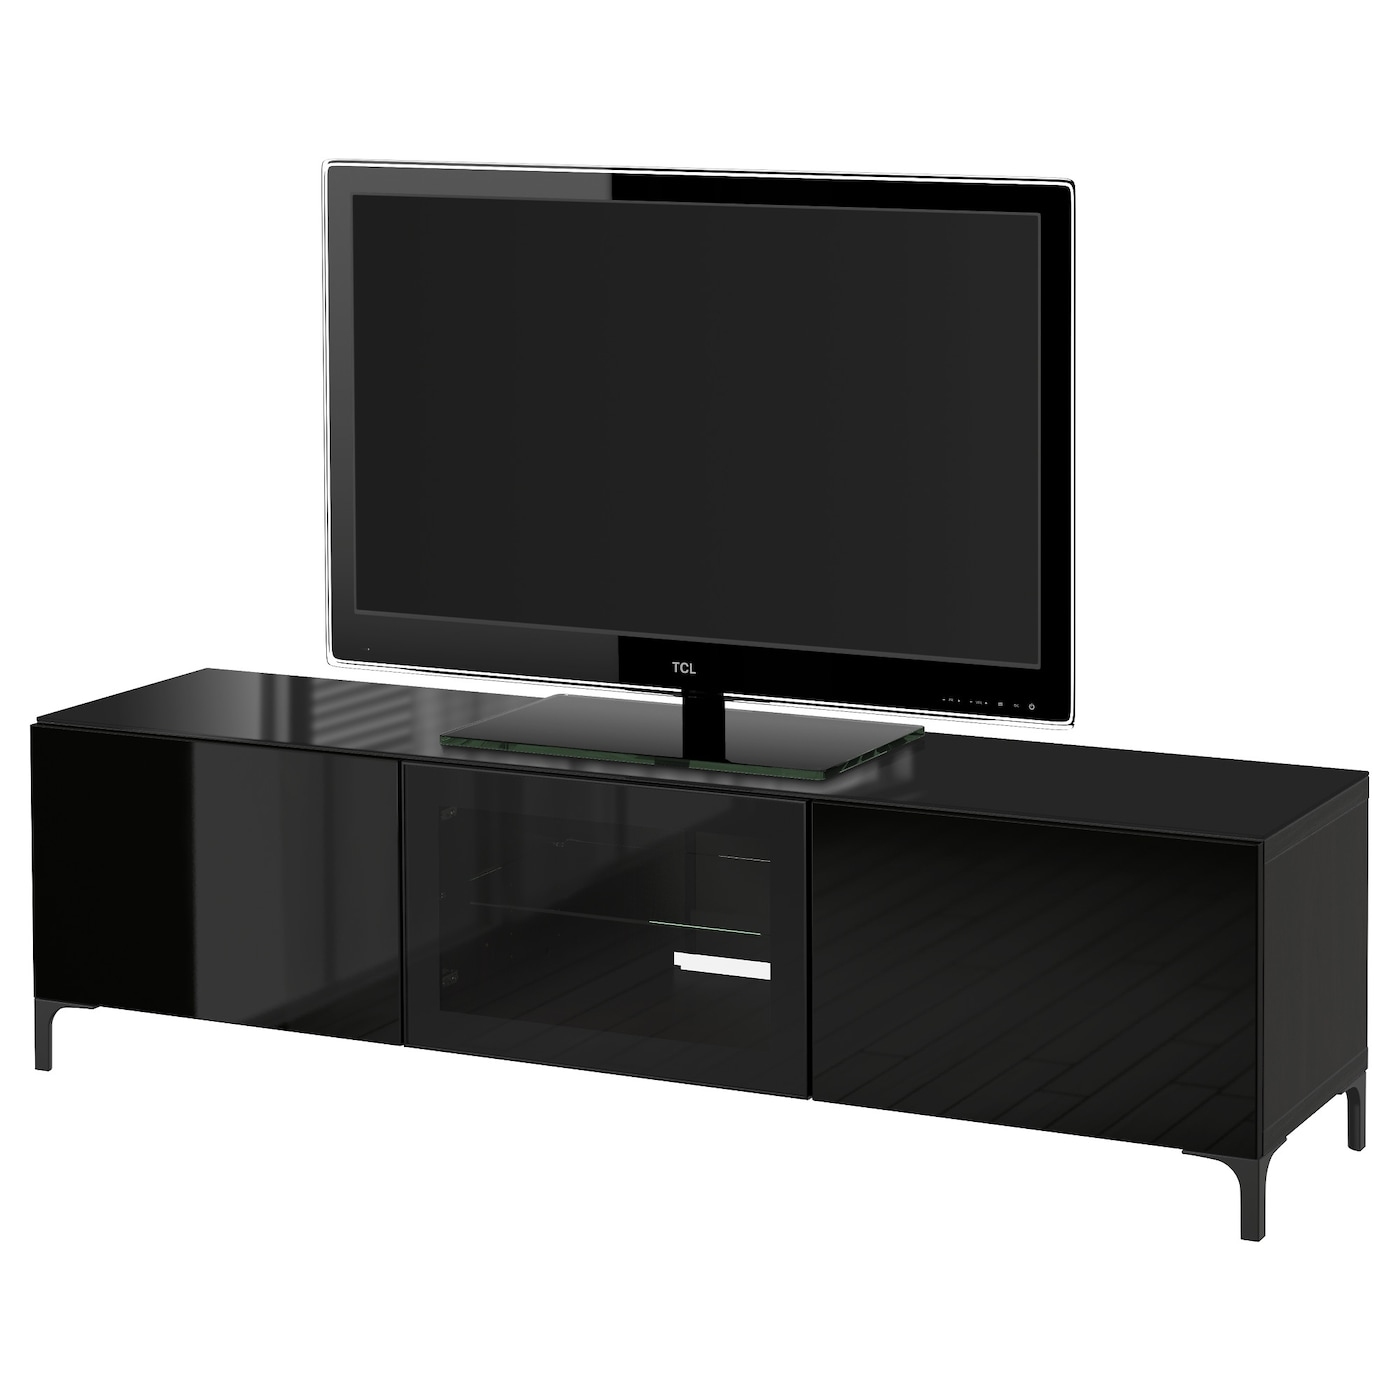 BEST u00c5 TV bench with doors Black brown  selsviken high gloss  black clear glass 180x40x48 cm   IKEA